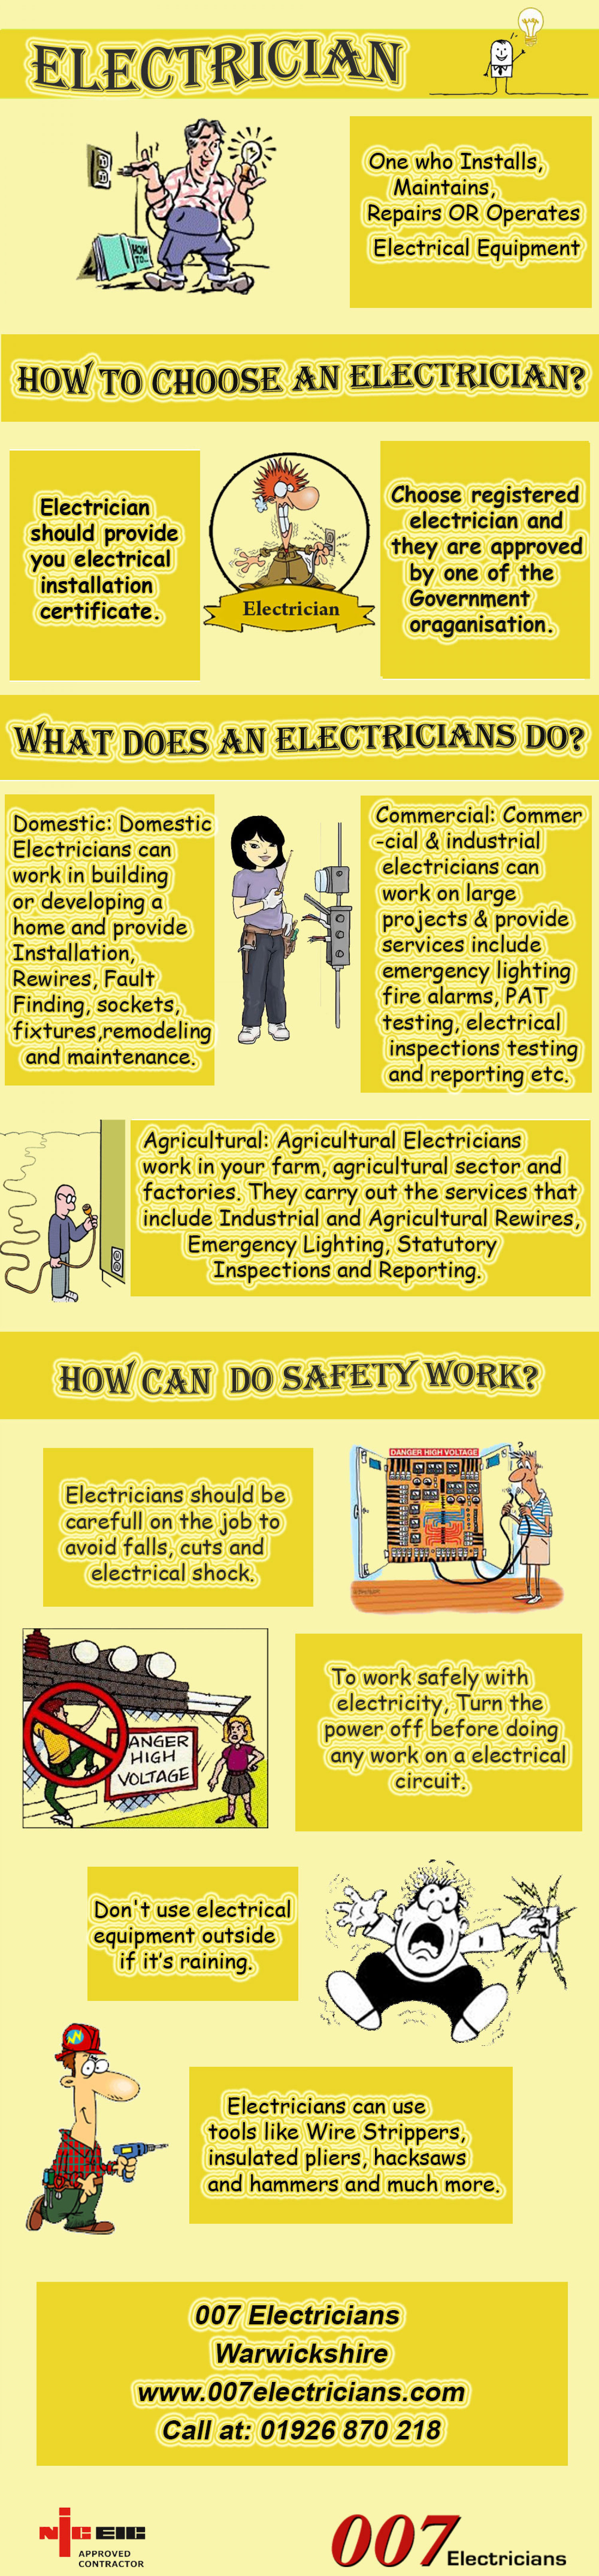 Electrician Coventry Infographic